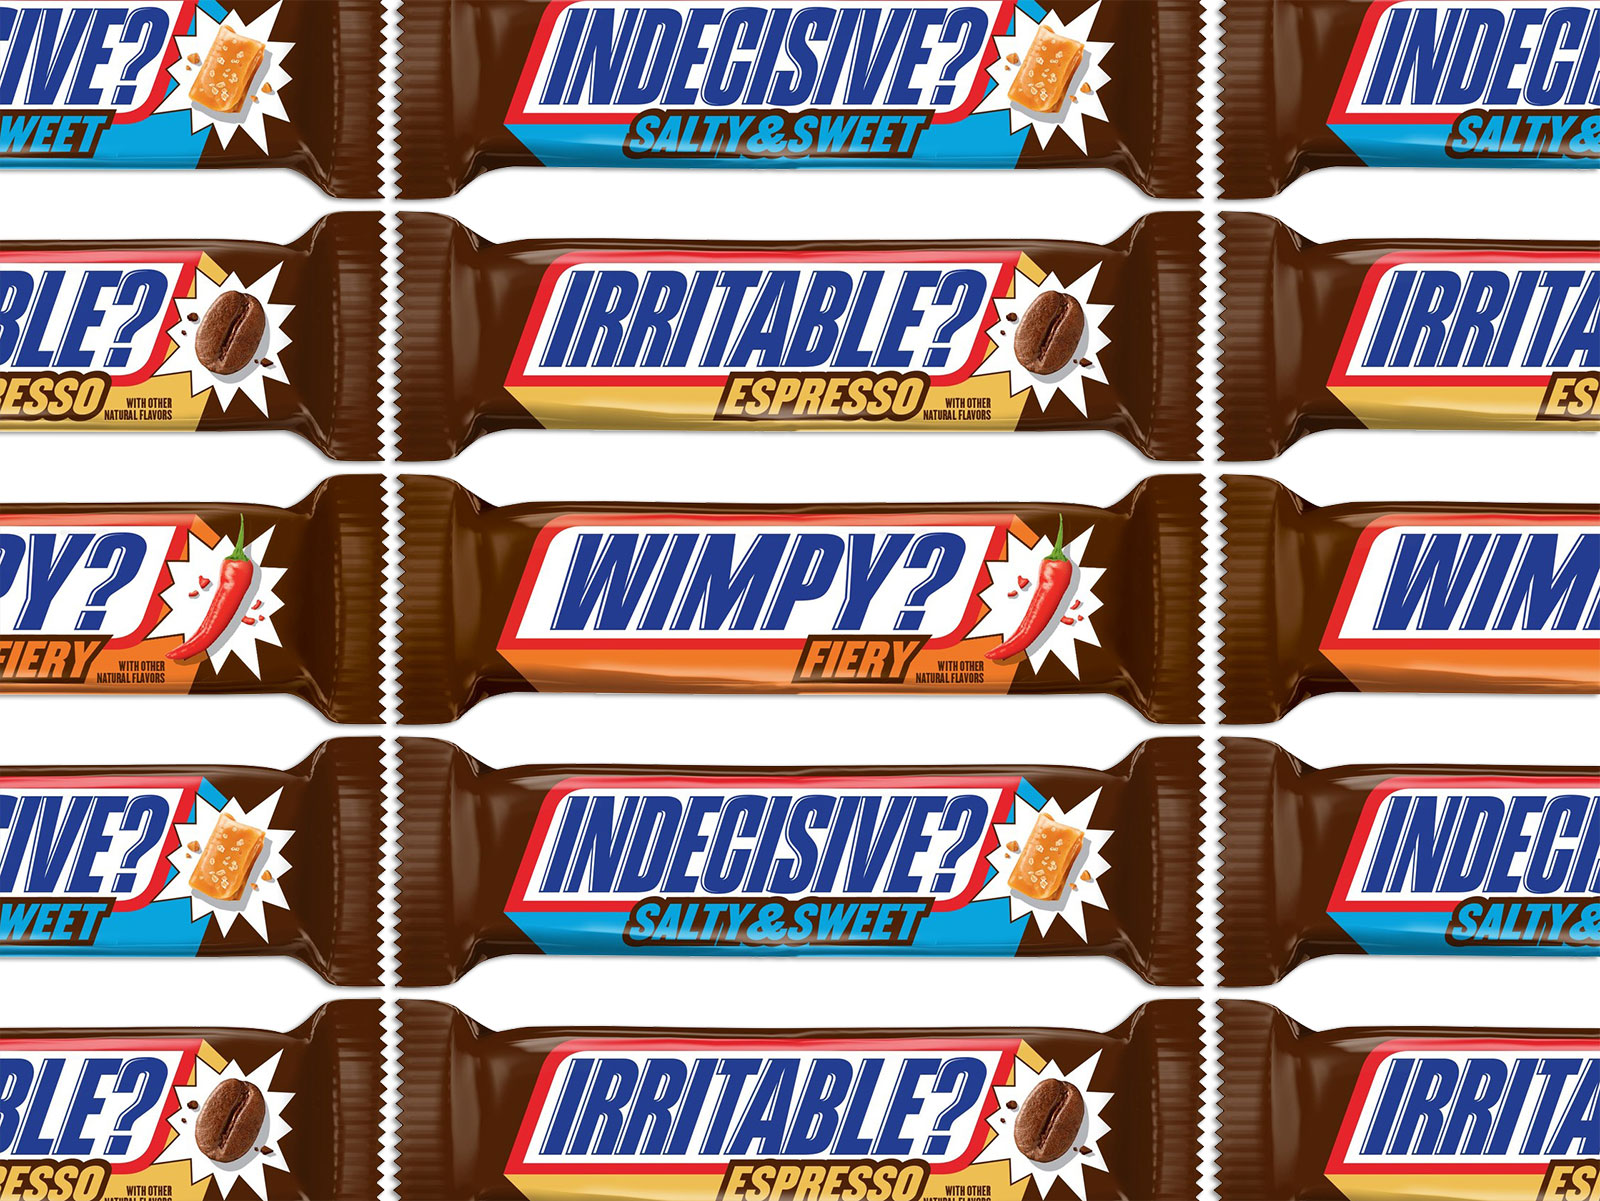 Snickers Releases Three New Bars